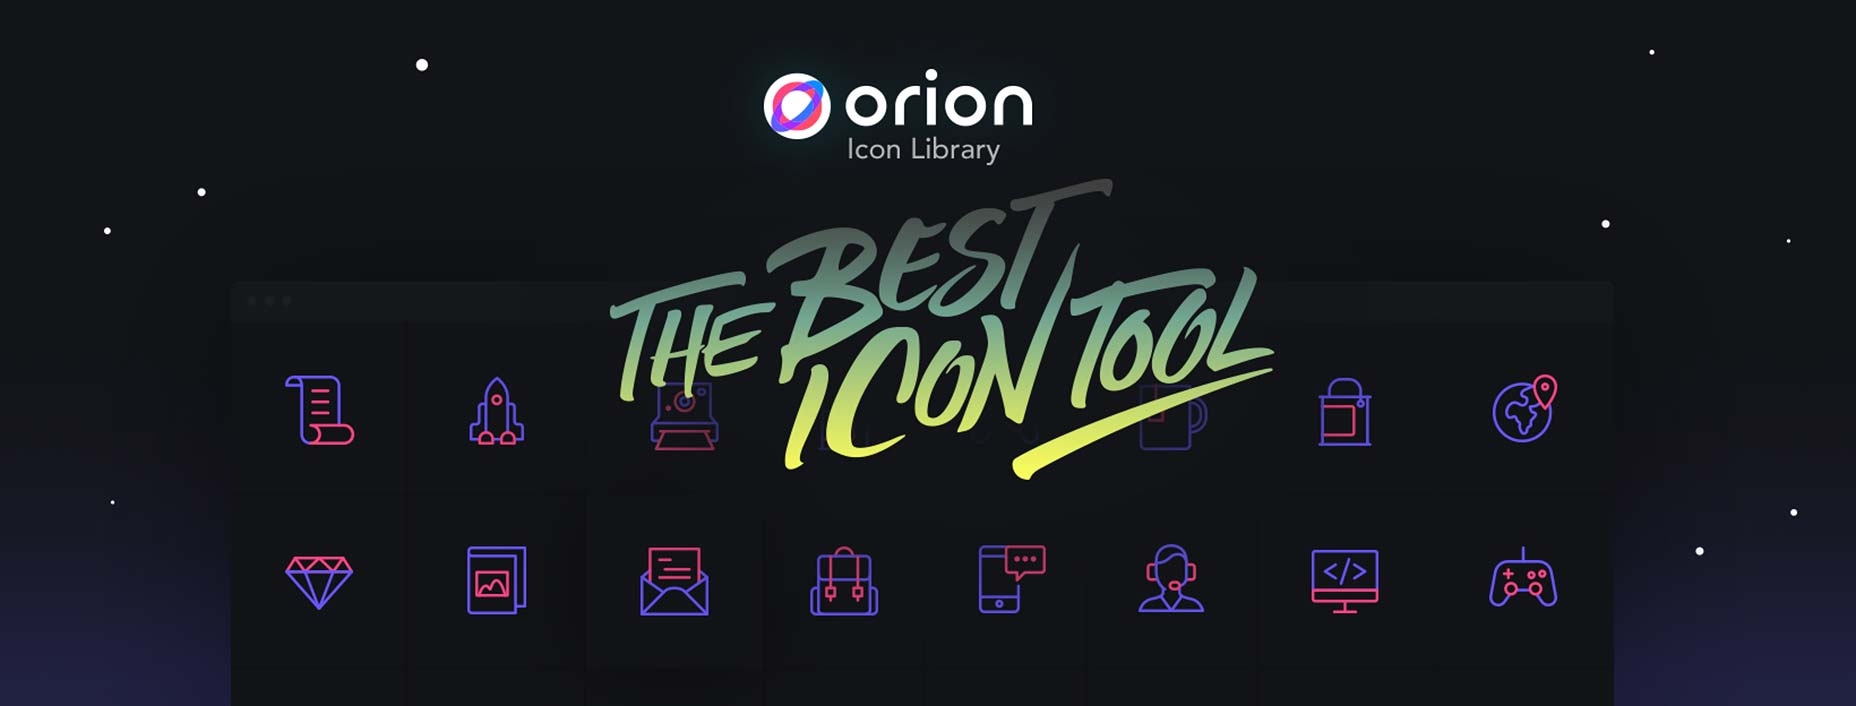 4_Orion